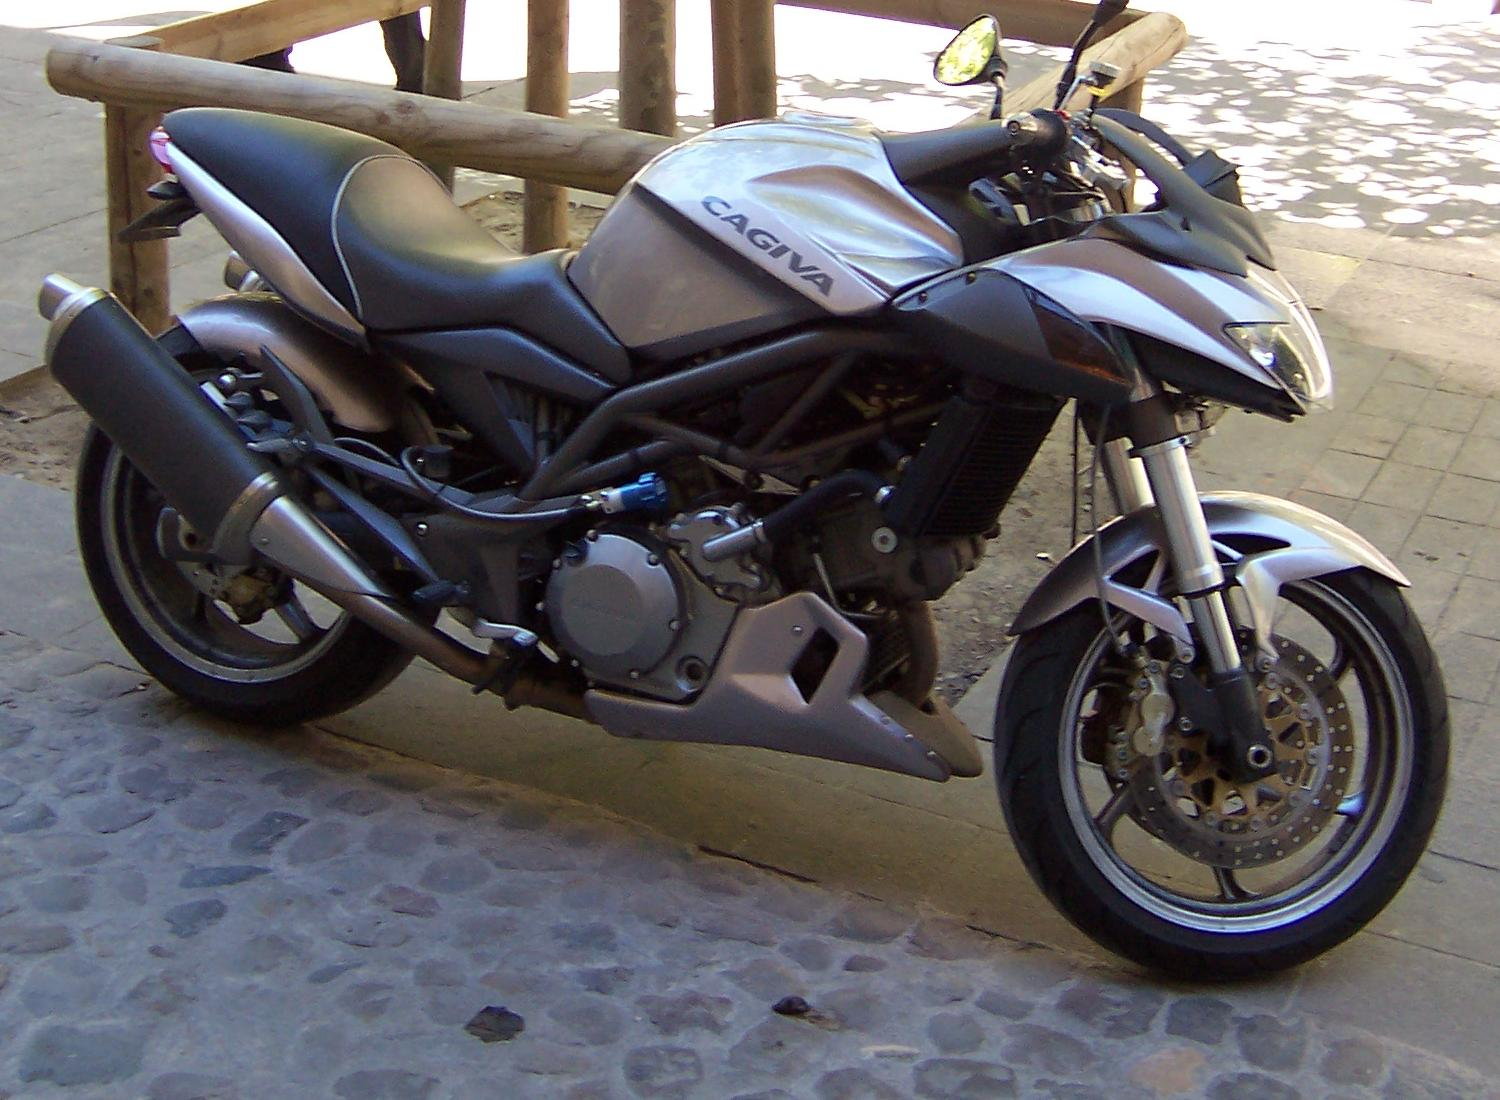 Cagiva Xtra Raptor 1000 2005 images #68003